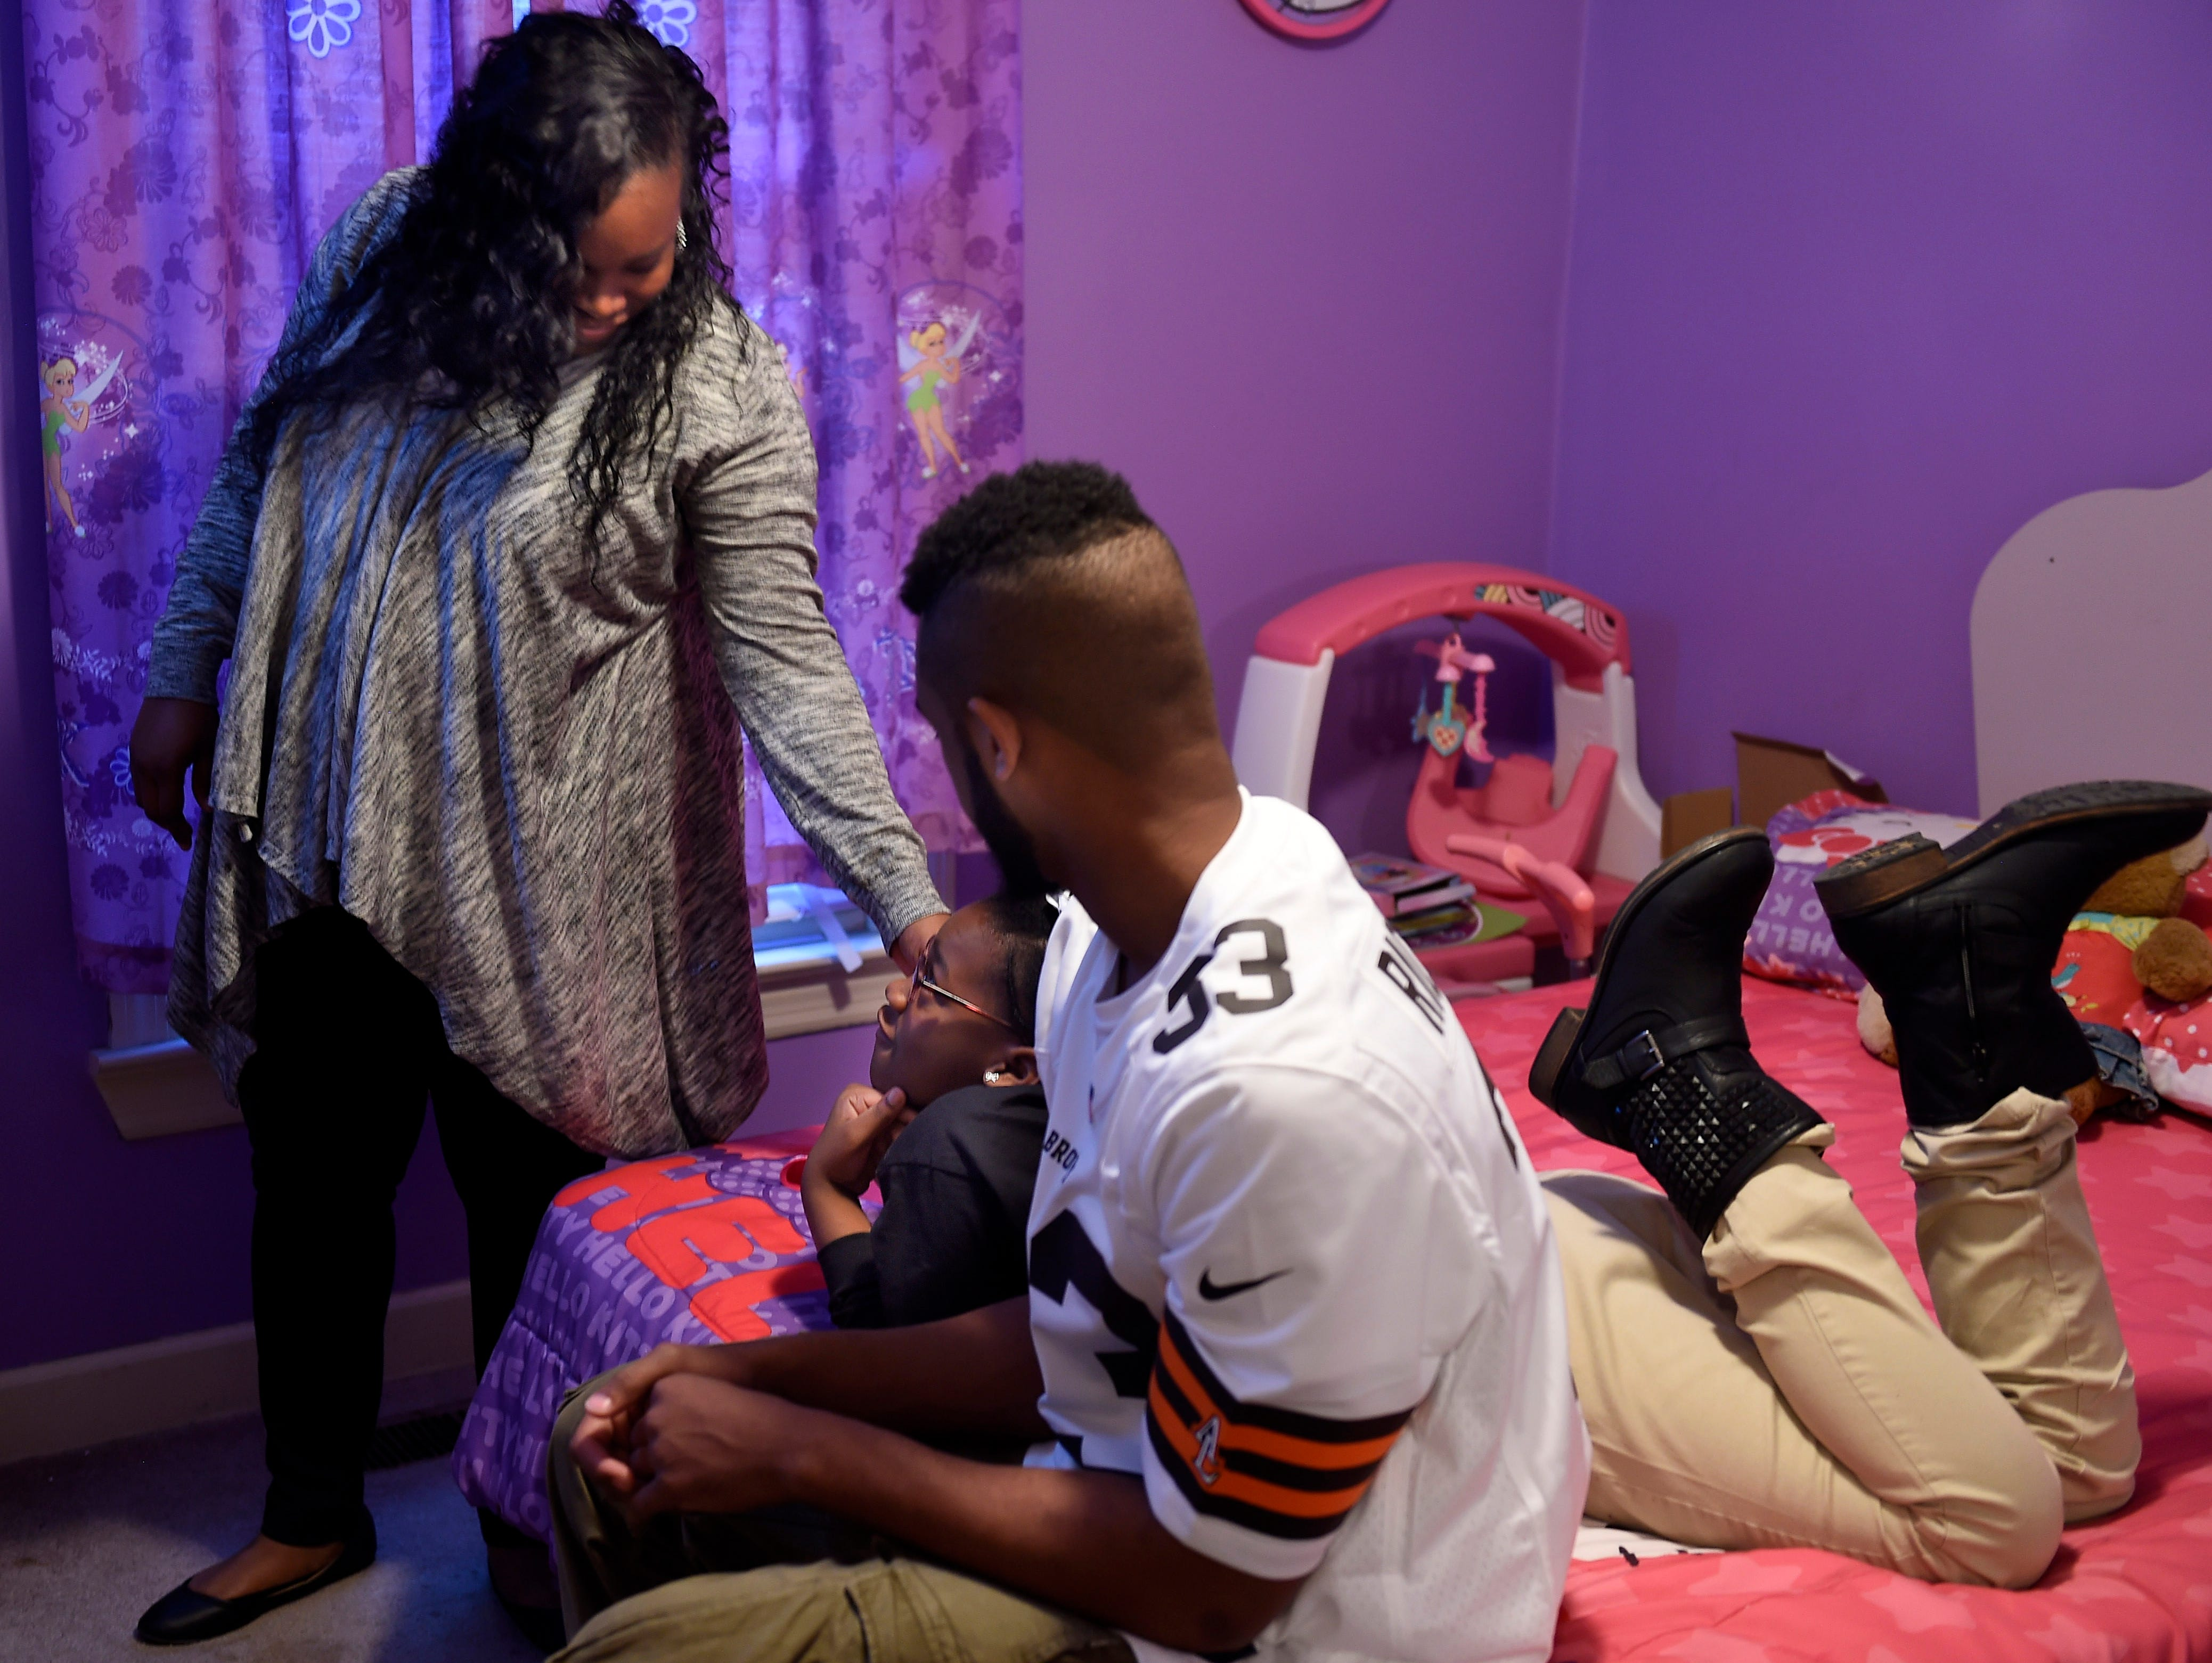 Vanessa Cortner checks on her daughter Nakia and young cousin Denarius Cortner as they watch cartoons together before heading off to school at their home Tuesday Feb. 2, 2016, in Nashville, Tenn. The East Nashville High School football player Denarius Cortner is committing to the Western Carolina football program.